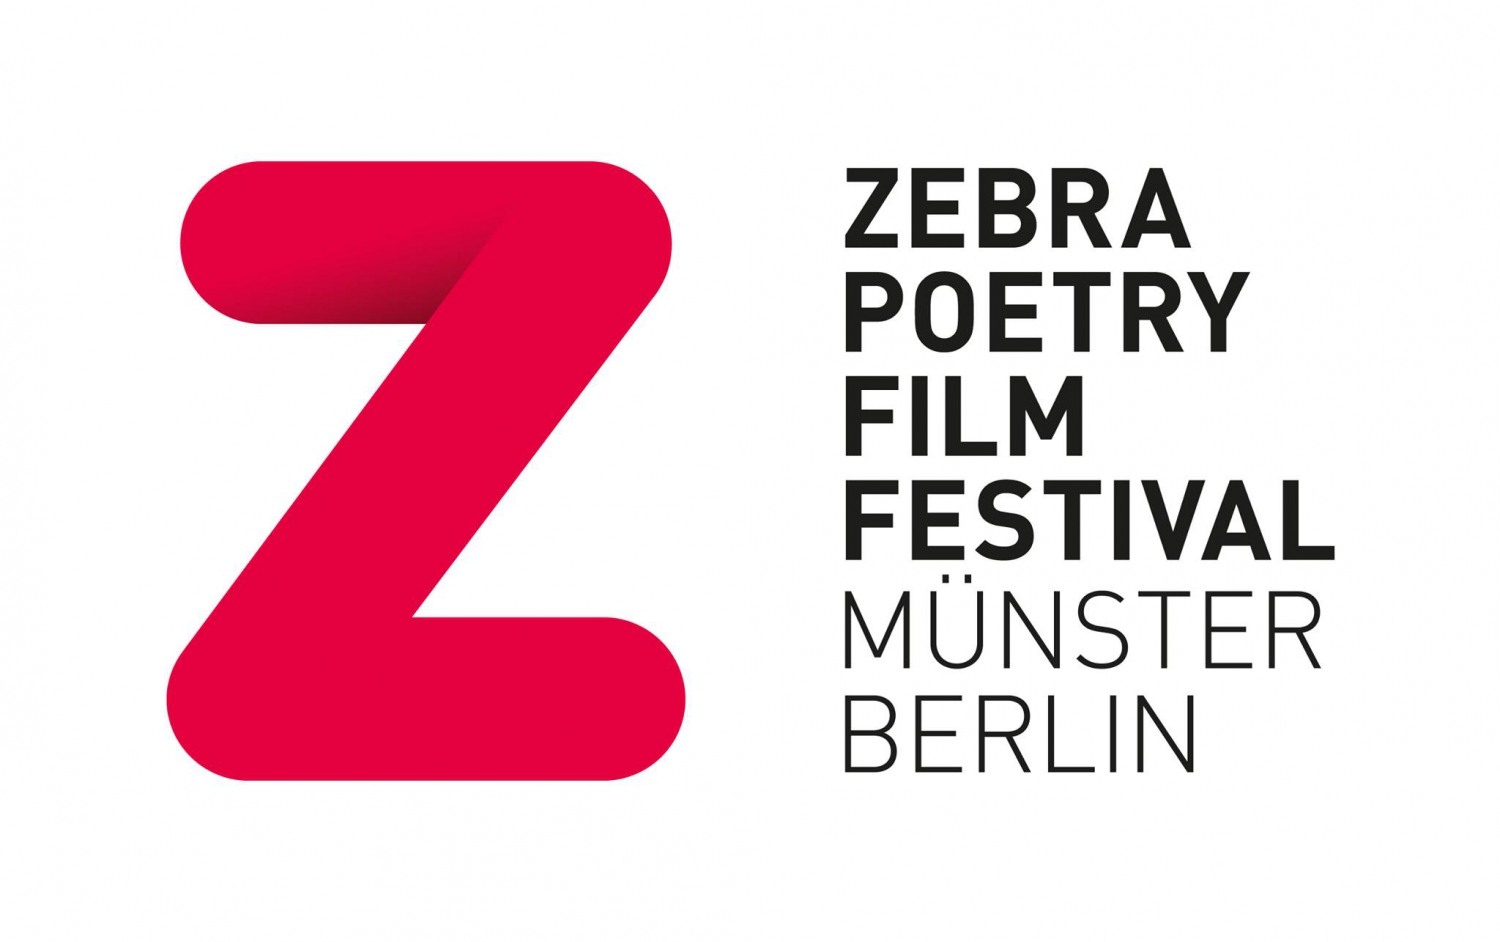 ZEBRA Poetry Film Festival 2018